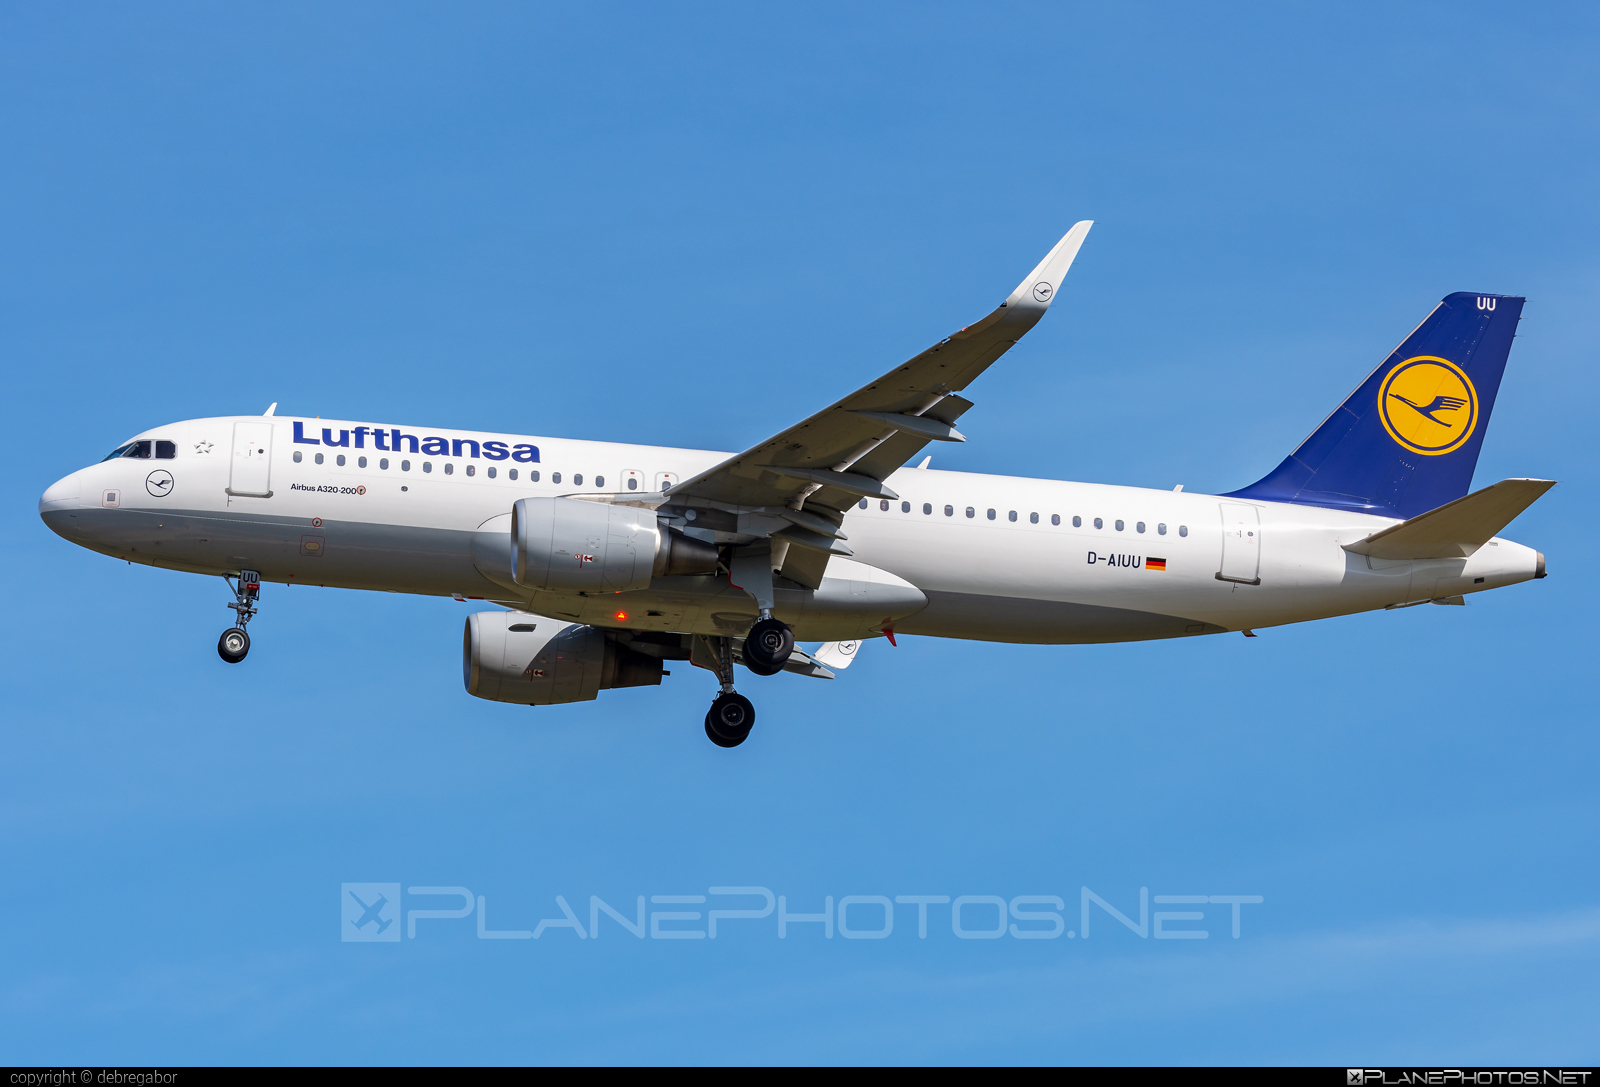 Airbus A320-214 - D-AIUU operated by Lufthansa #a320 #a320family #airbus #airbus320 #lufthansa